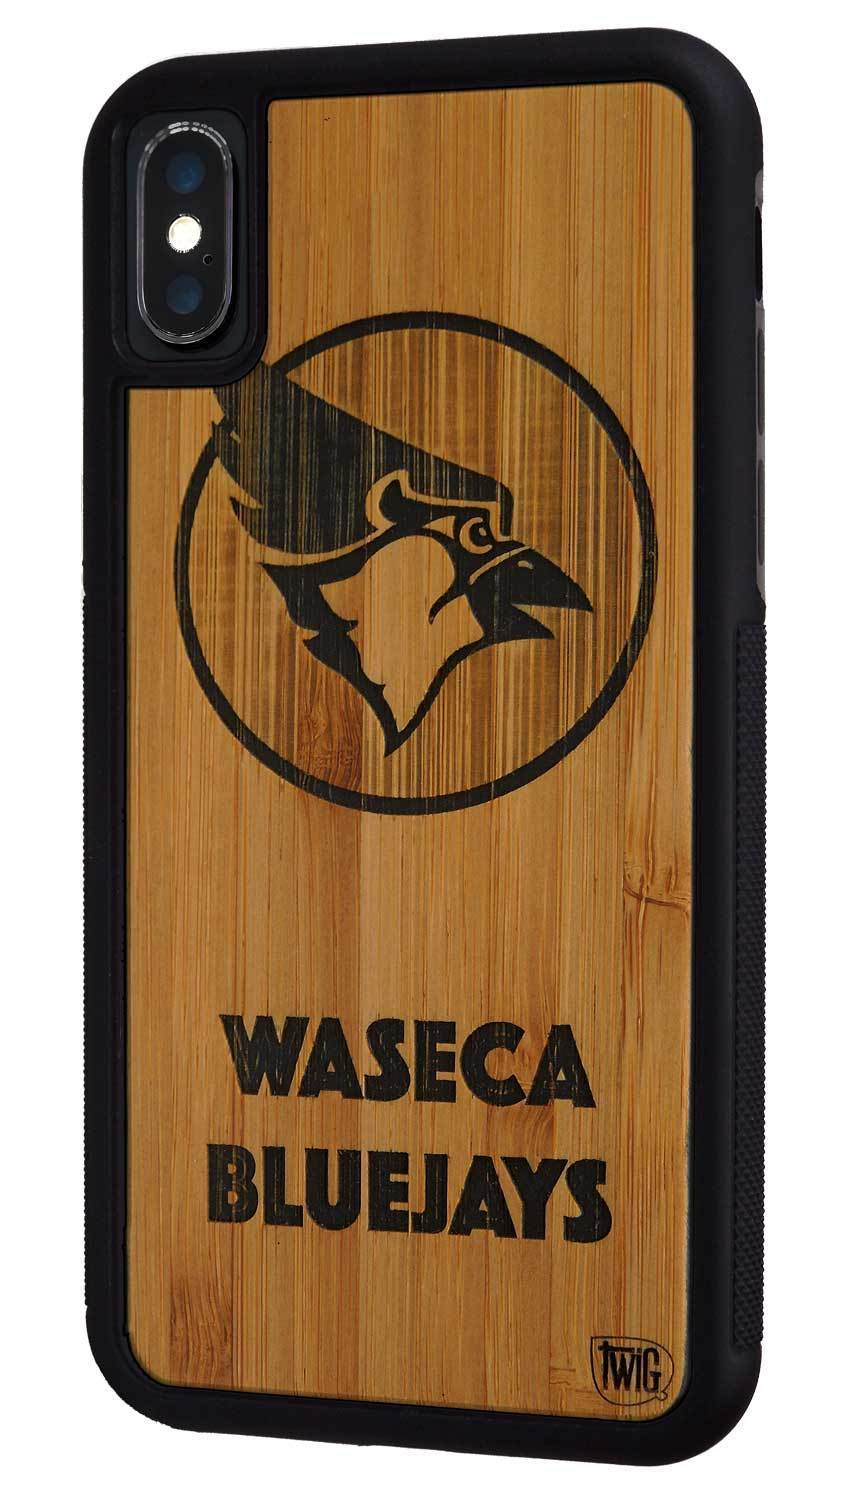 Waseca Bluejays - Walnut Case for iPhone X/XS/Max/XR, Walnut Case for iPhone X/XS/Max/XR - Twig Case Co.